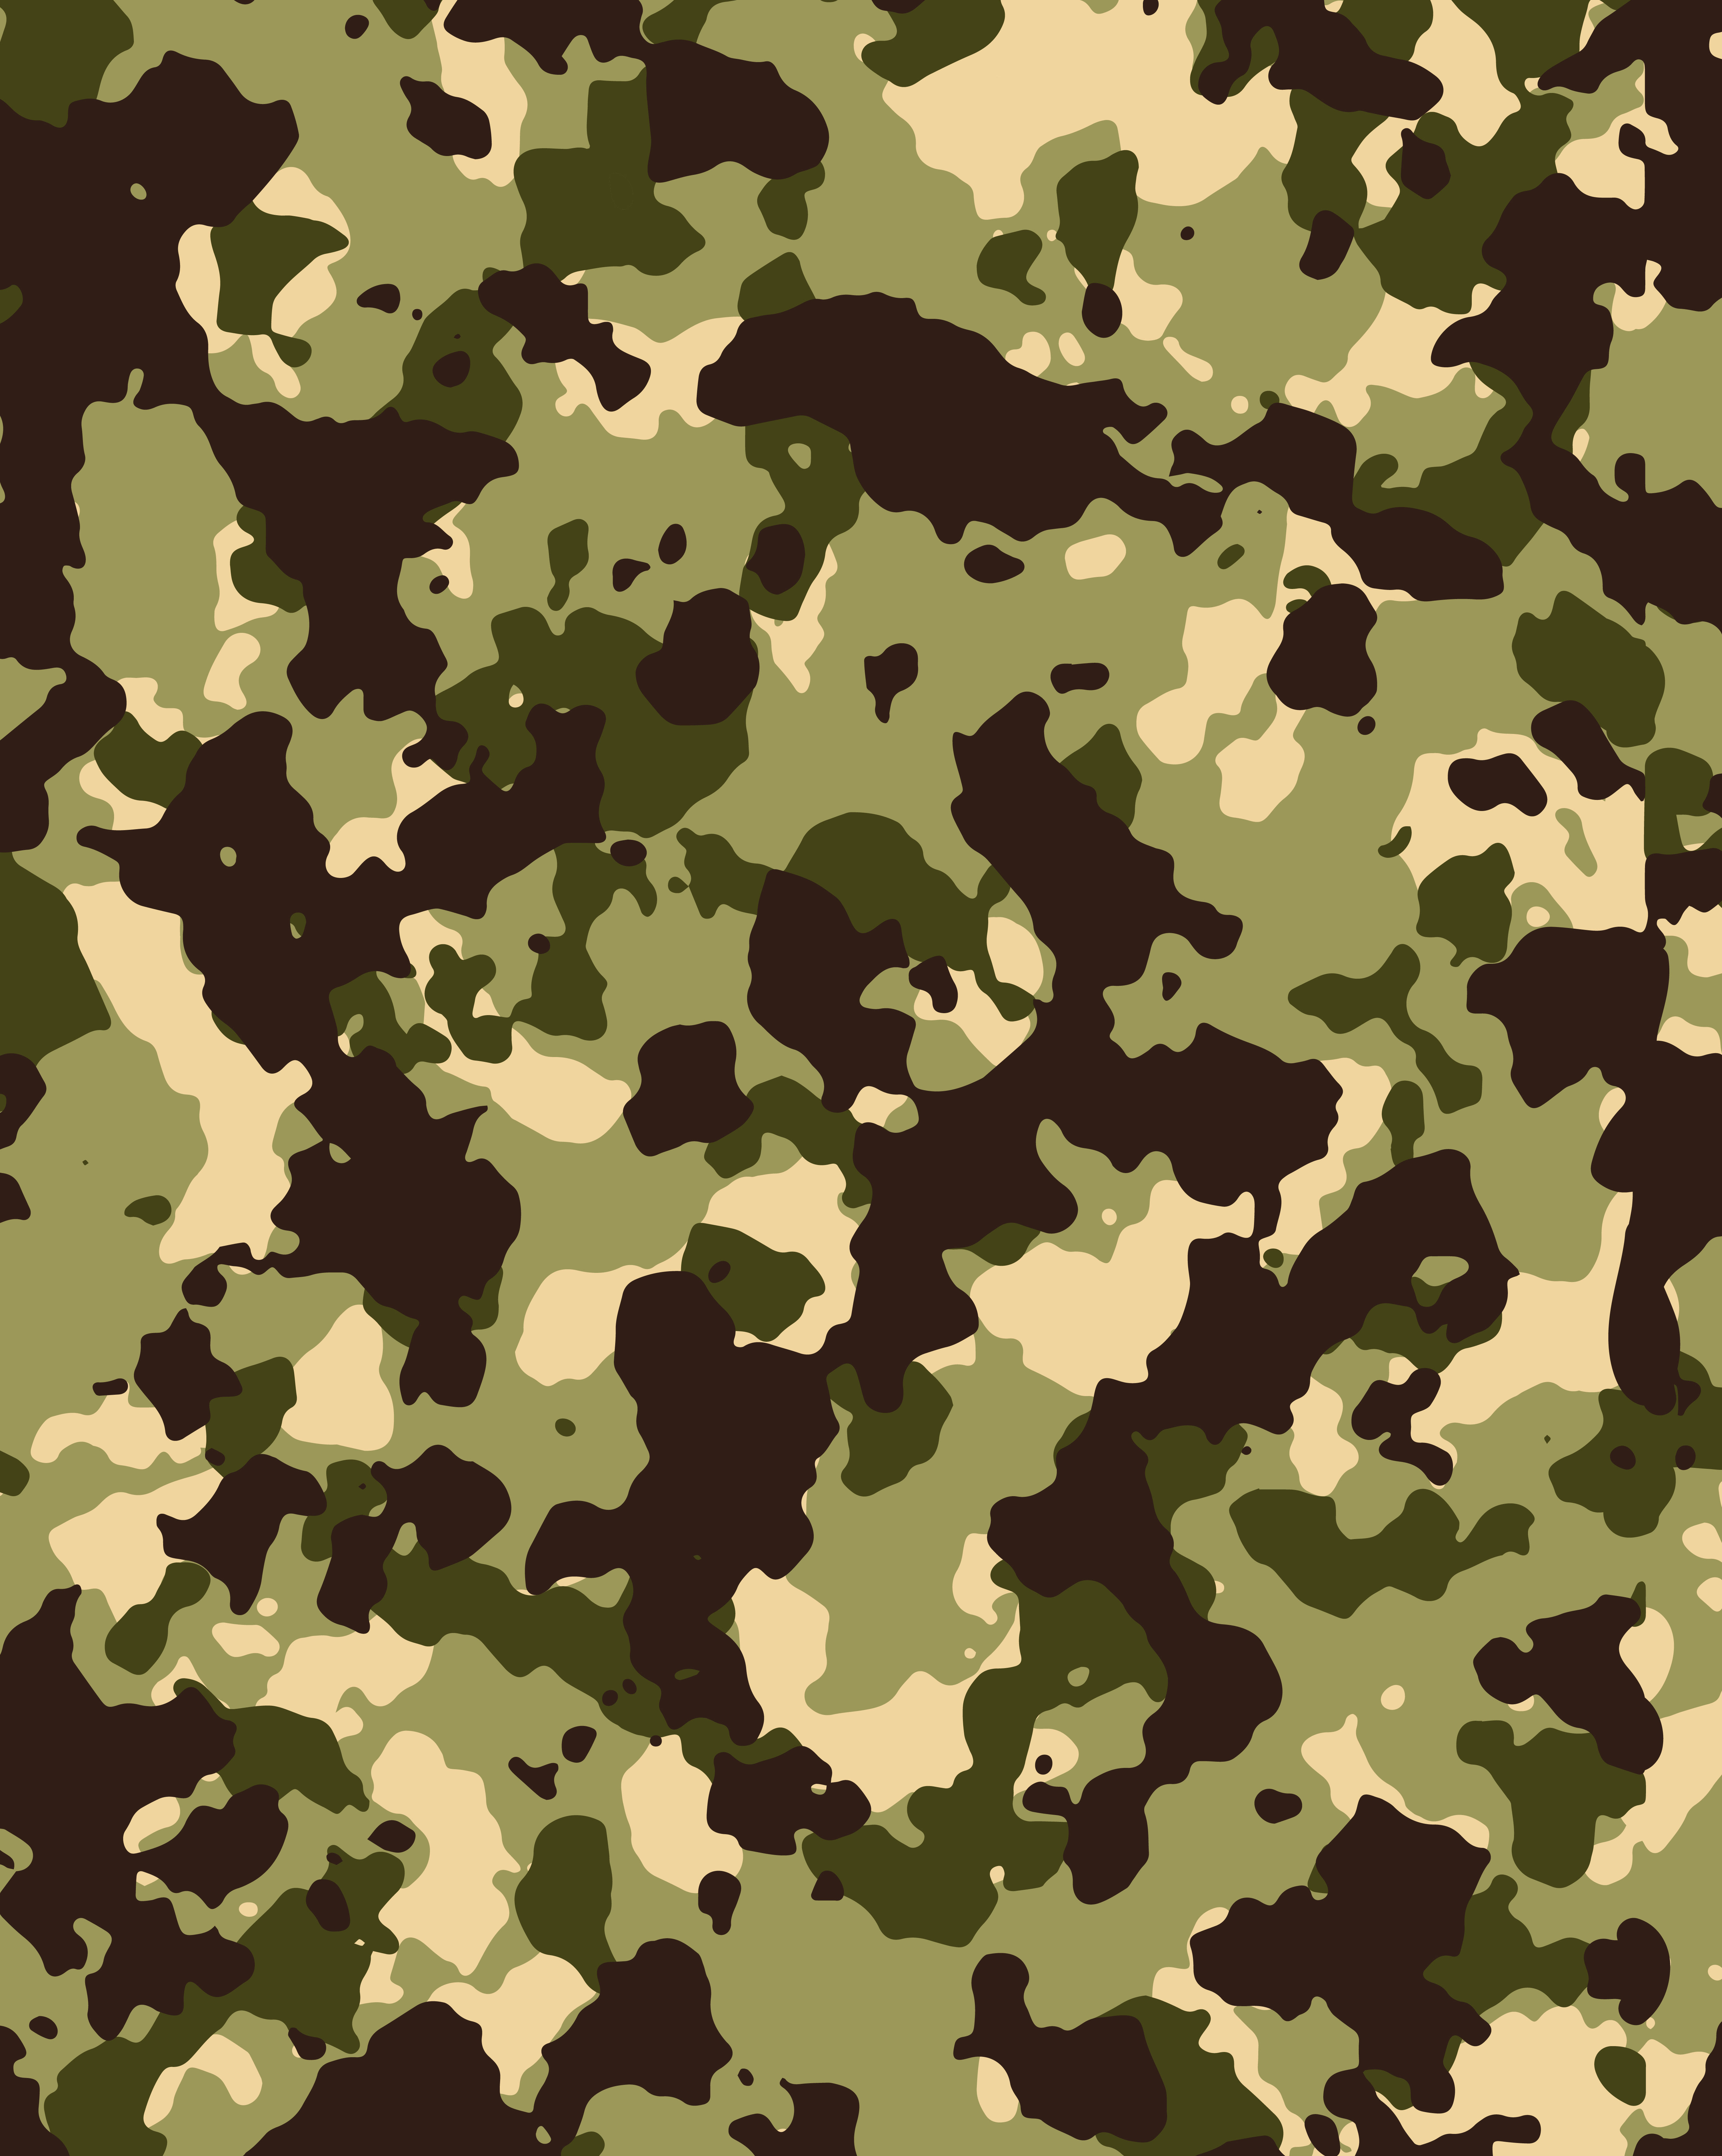 Fall Bird Wallpaper Vector Green Military Camouflage Texture Background